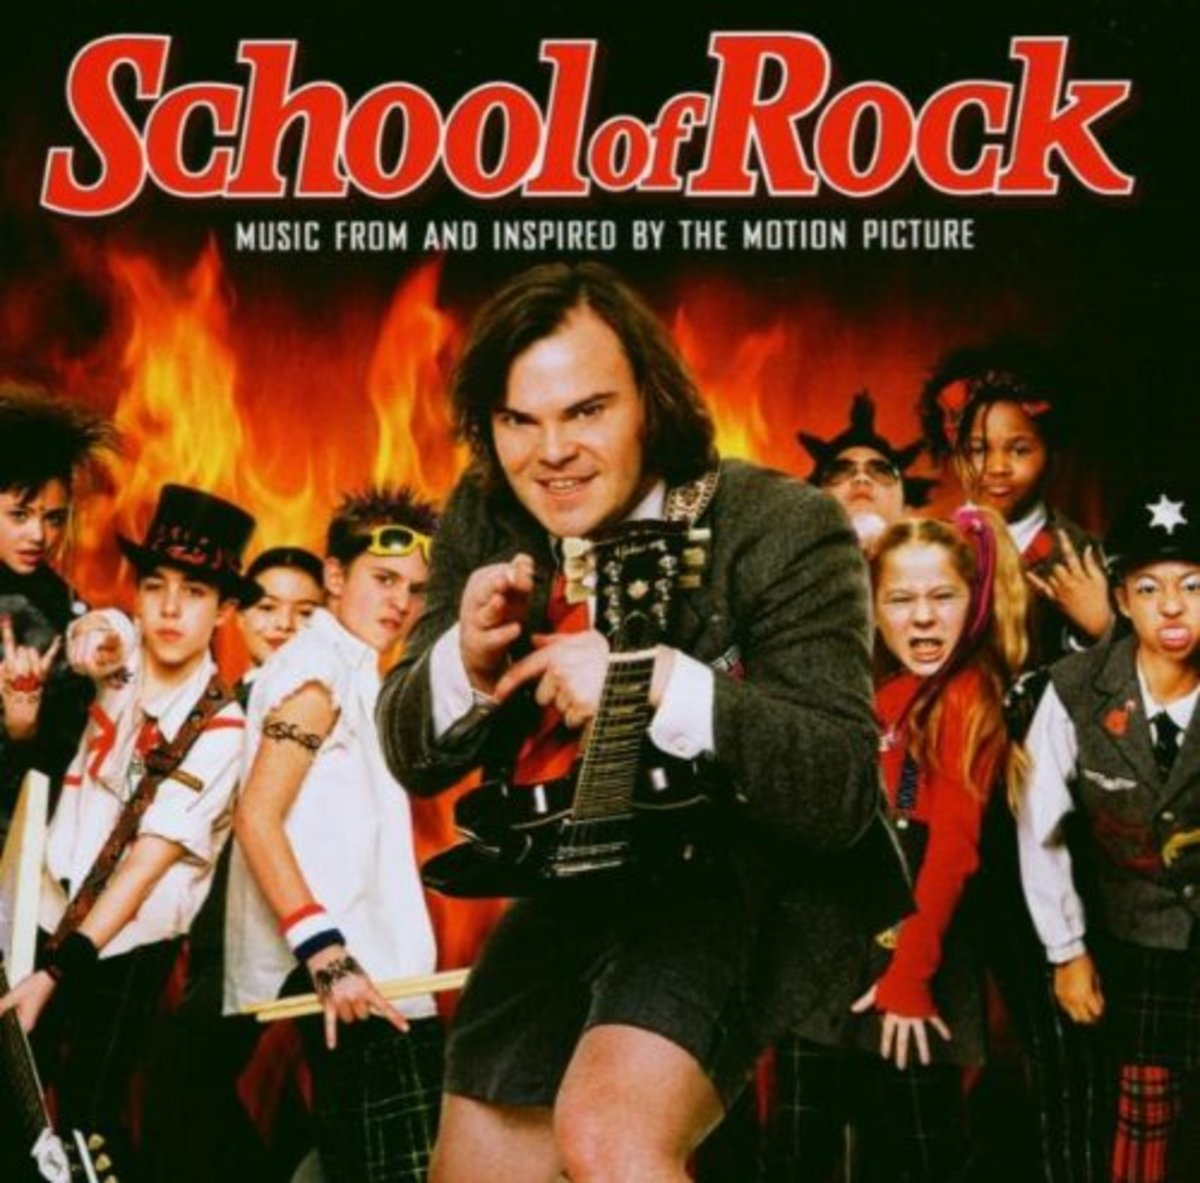 Rock and roll movies